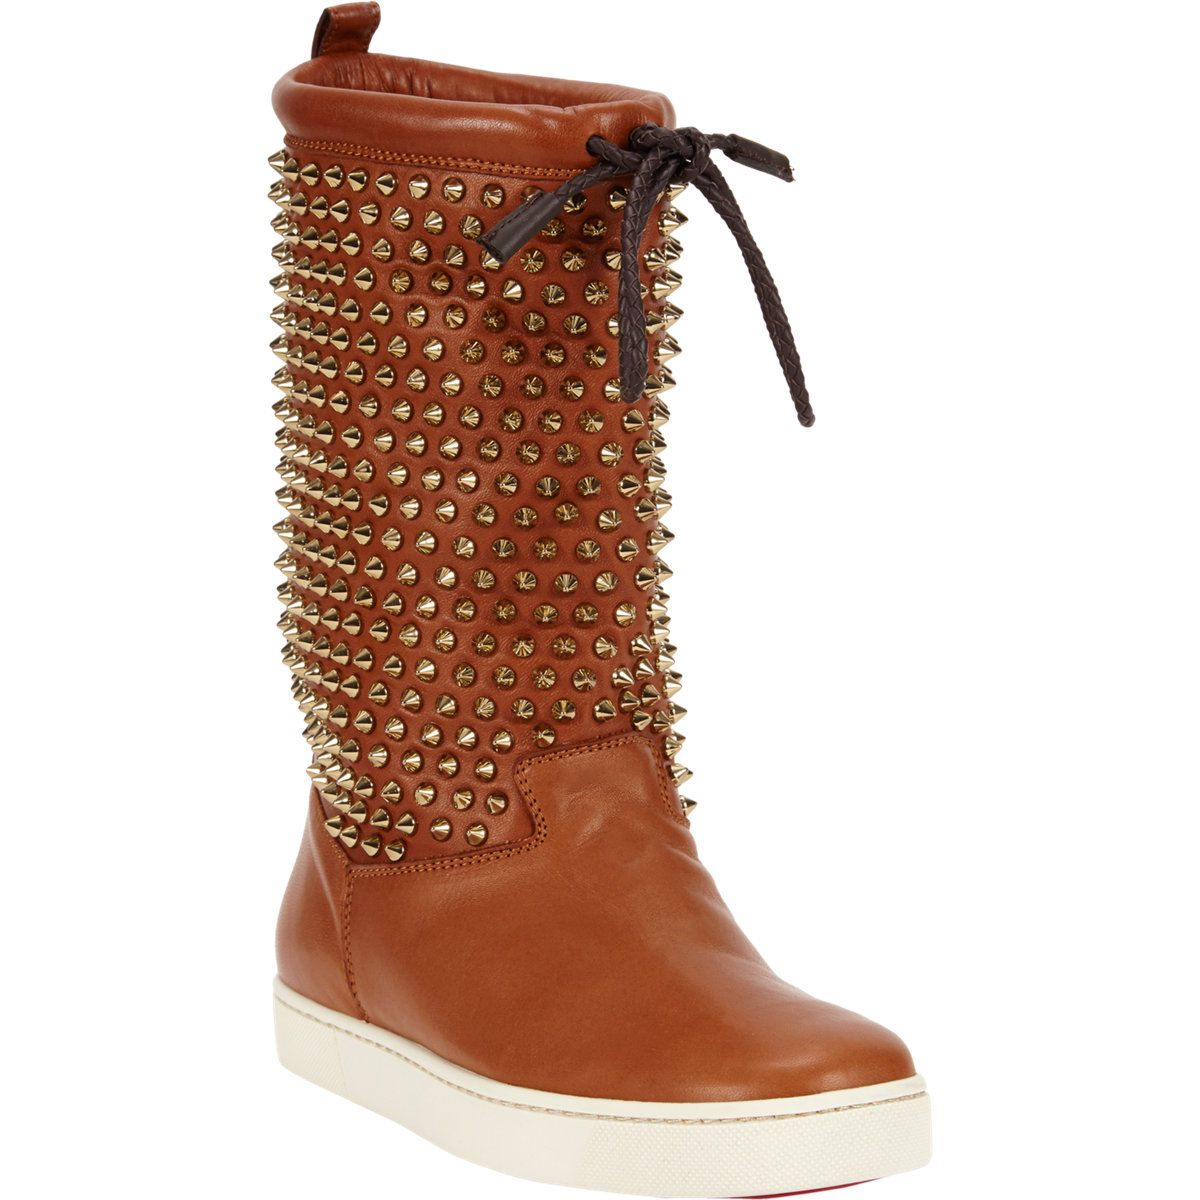 Christian Louboutin Surlapony Spiked Boot at Barneys.com I LOVE LOVE LOVE THESE!!!!